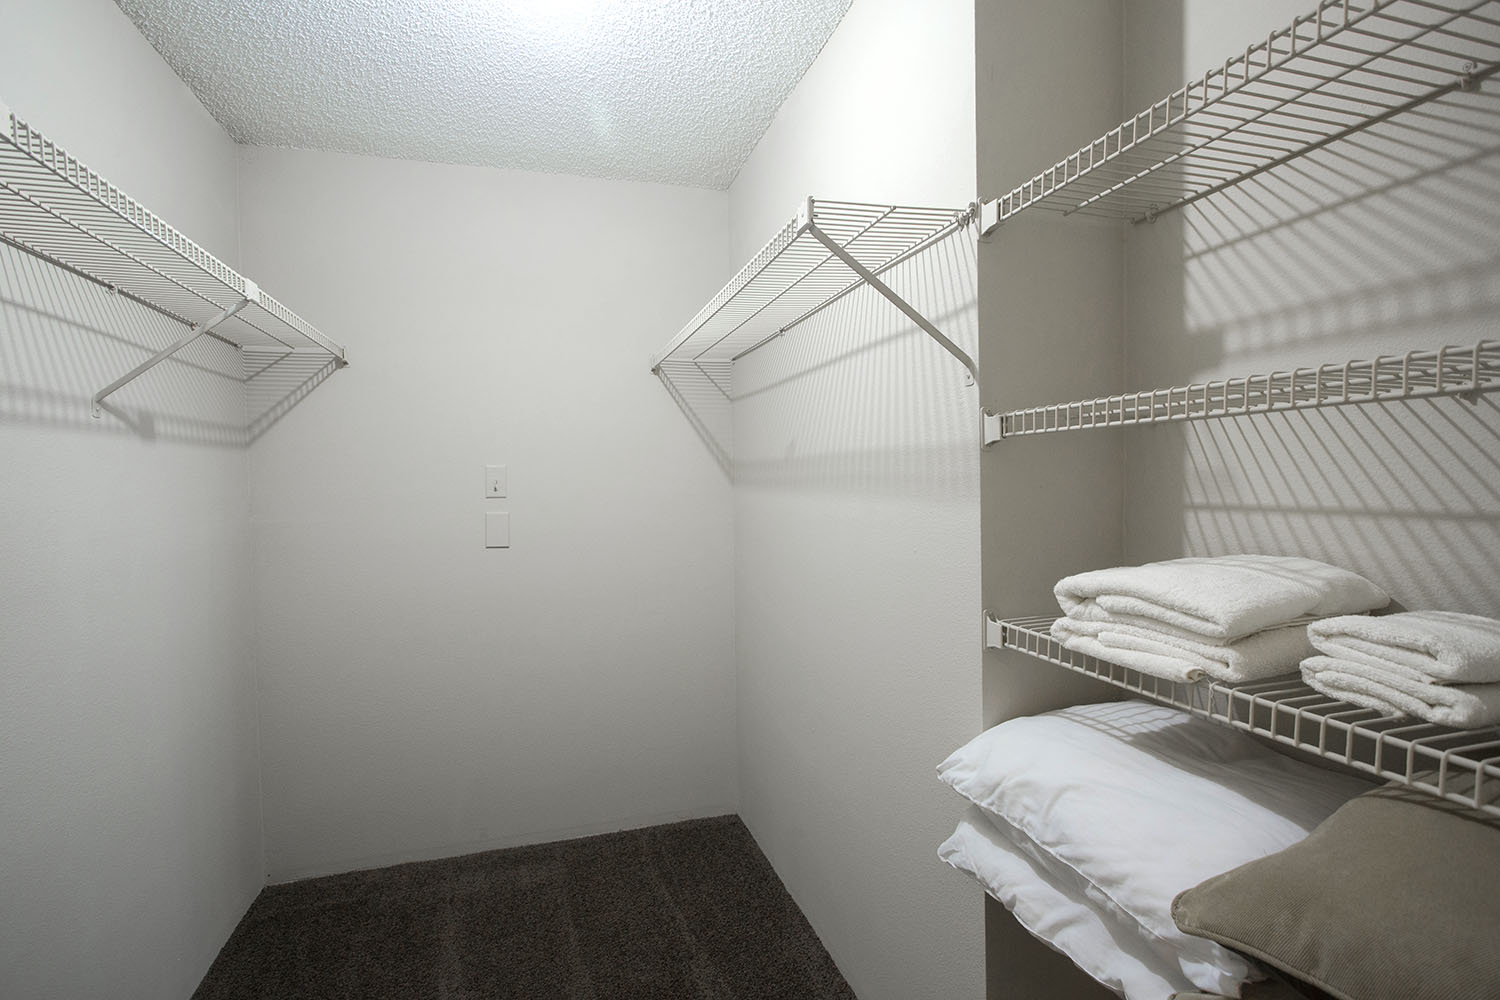 tampa-port_richey-apartment-one-bedroom-rental-two-closet.jpg